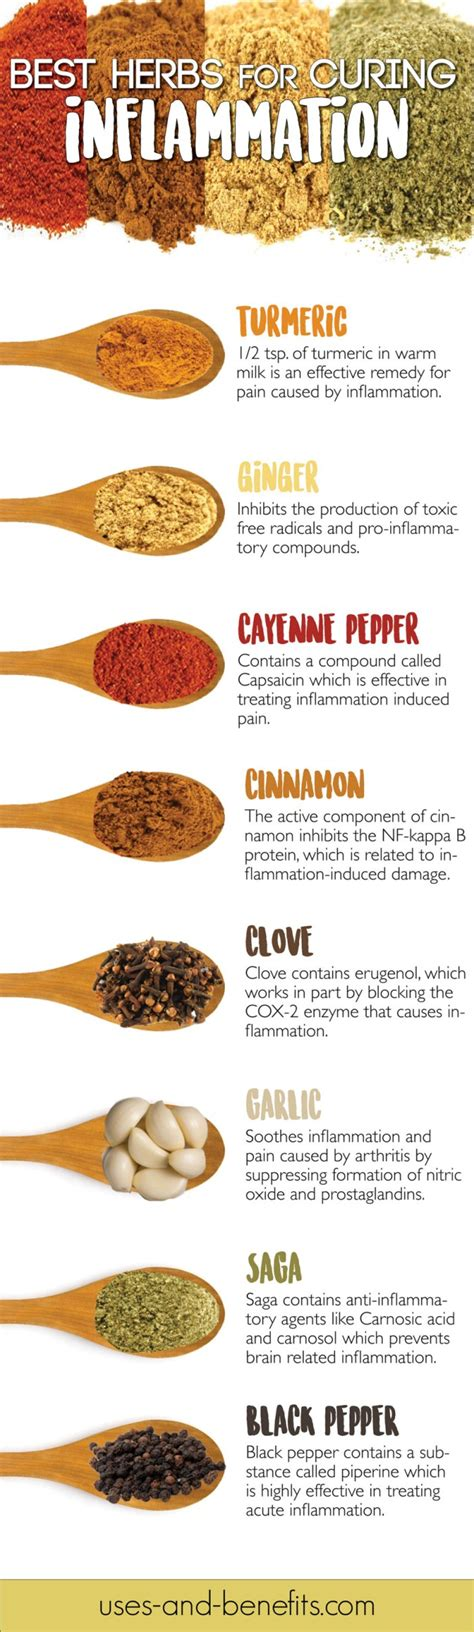 best medicine for inflammation best herbs for inflammation infection ayurveda